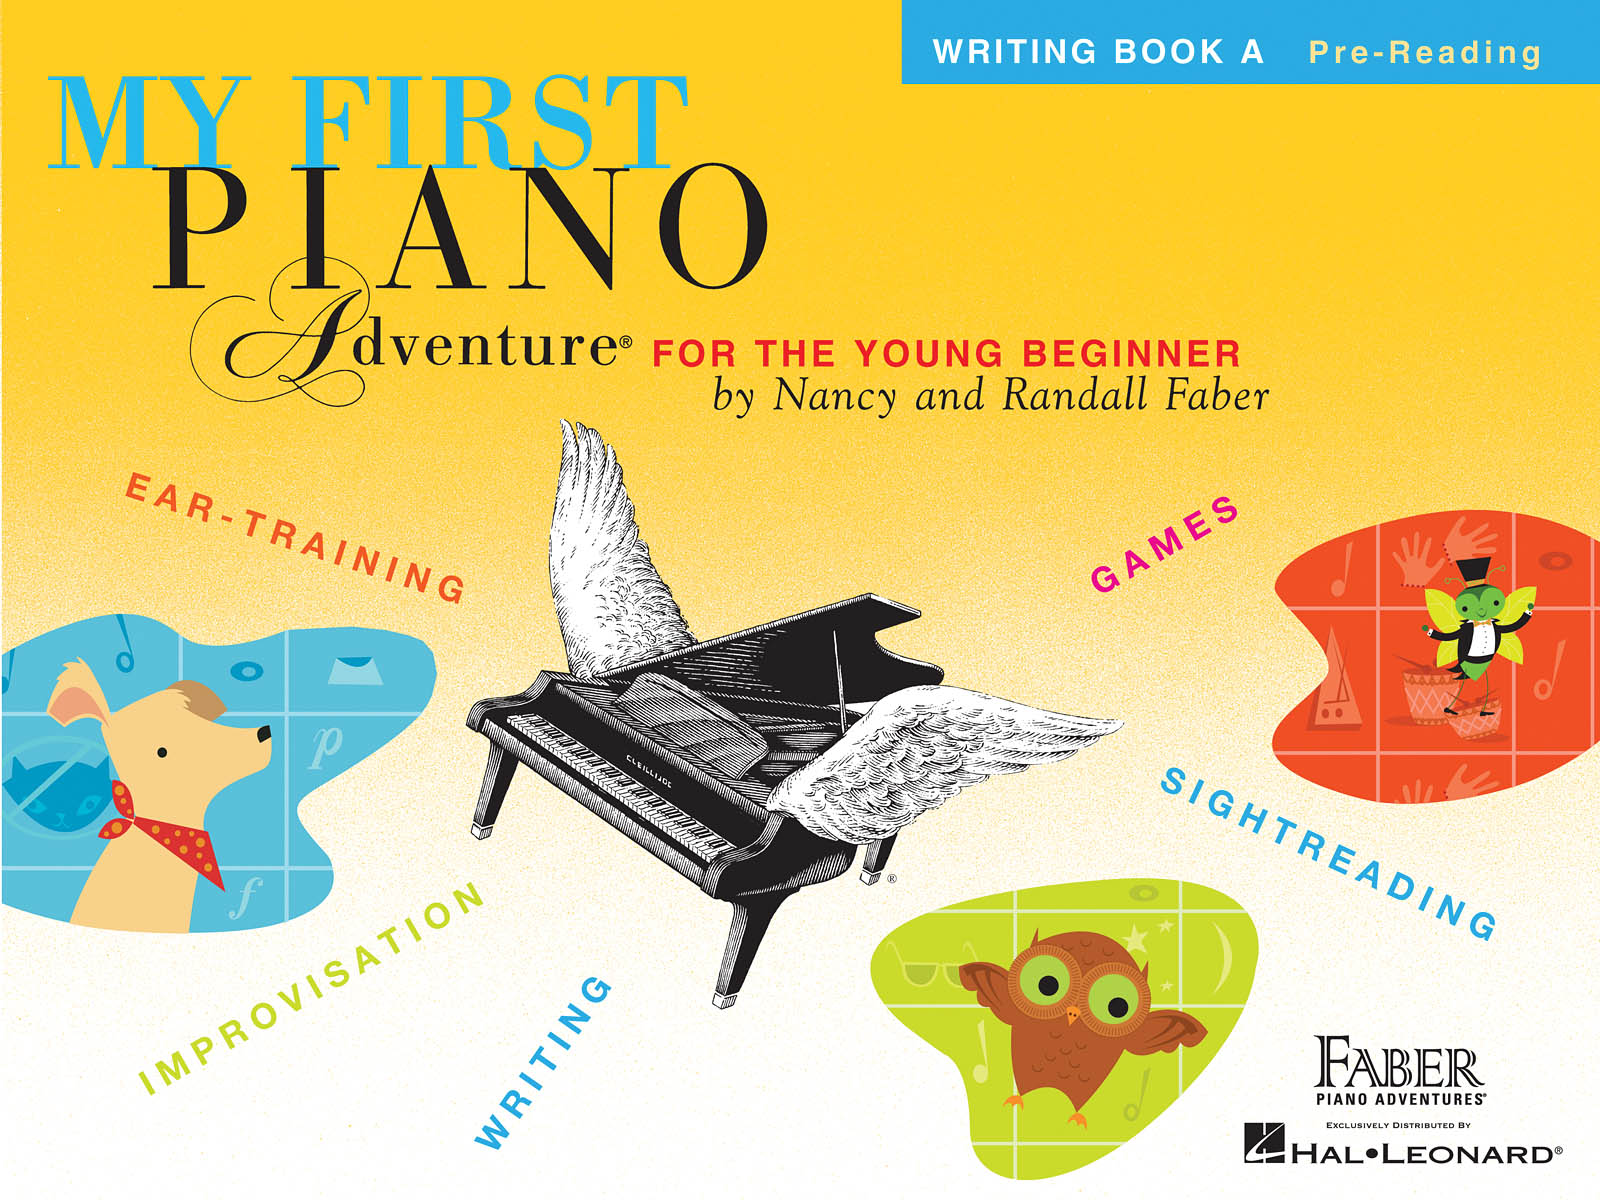 My First Piano Adventure Writing Book A, Pre-Reading